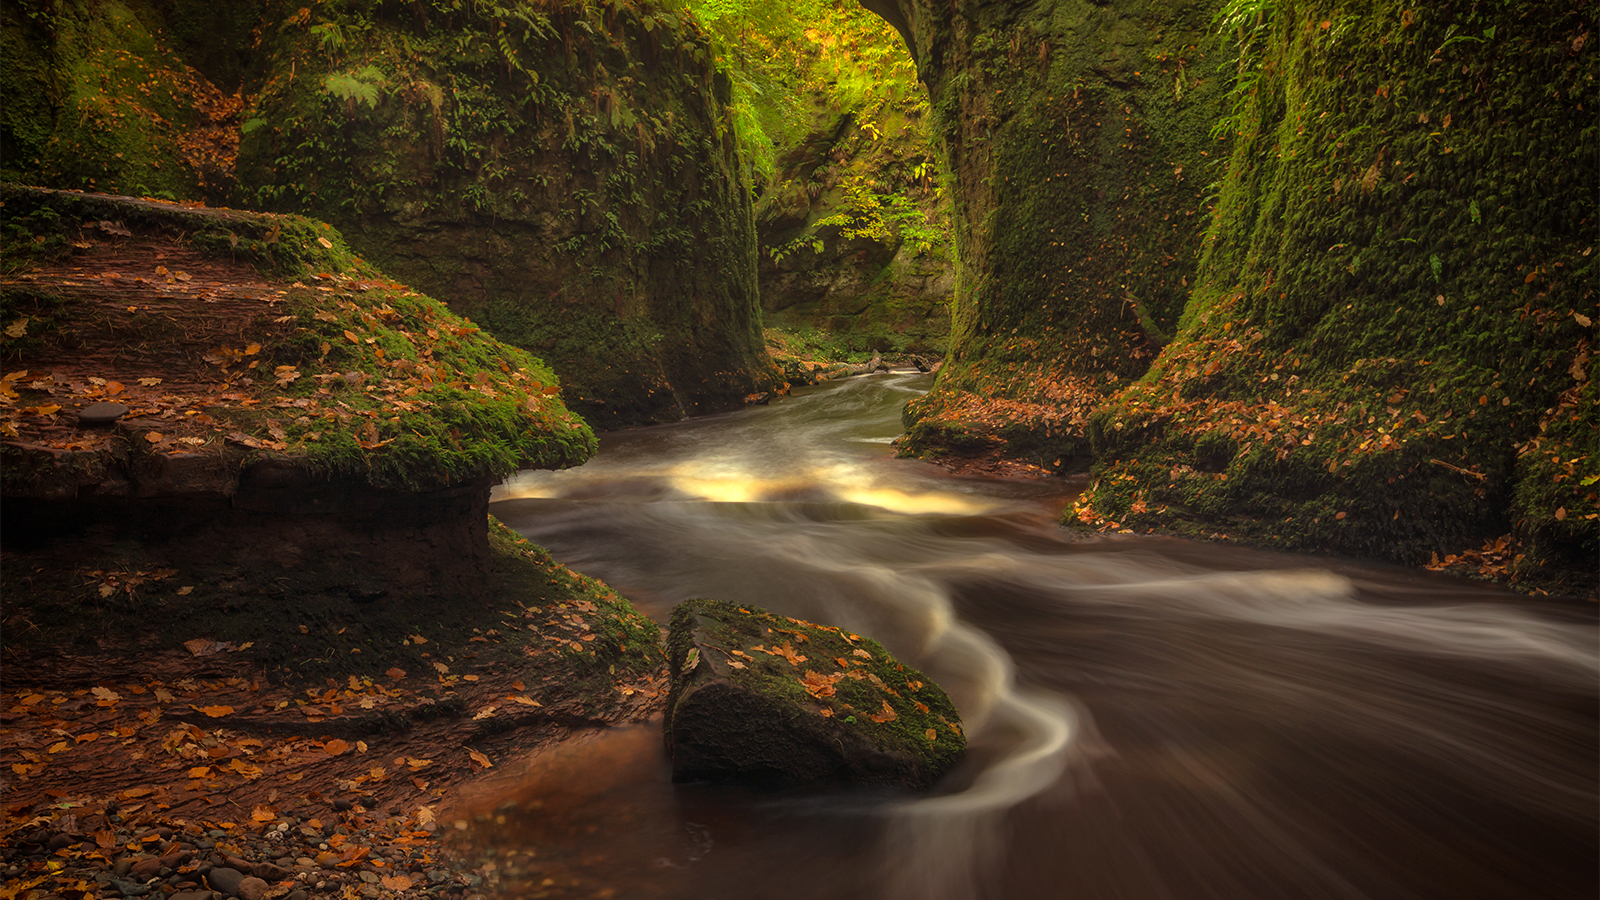 Exploring the depths of 'The Devil's Pulpit' in Finnich Glen on the Scotland Photography Workshop